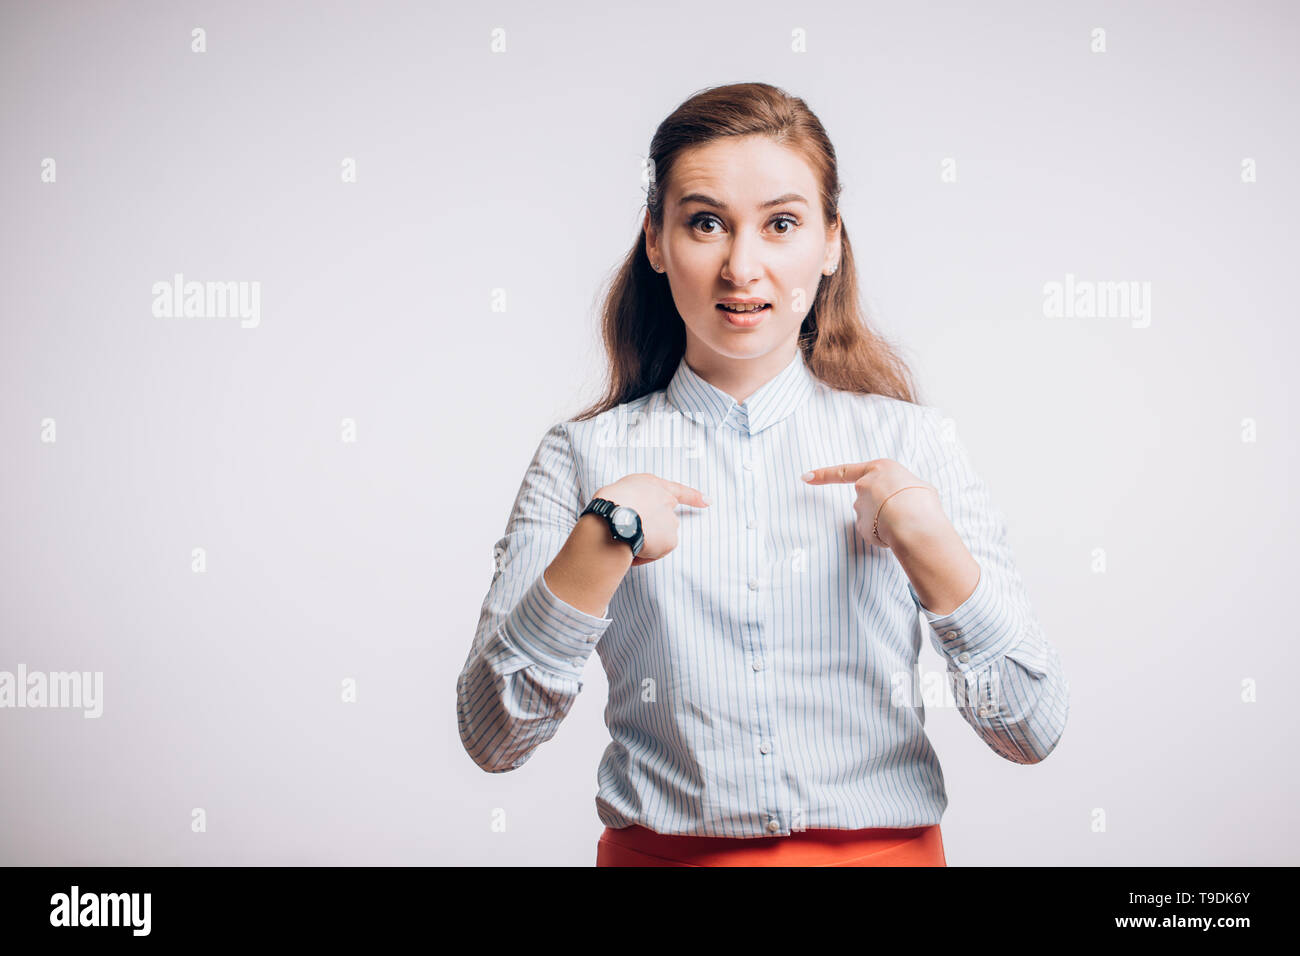 Young woman points at herself on white background, looks distrust. Business, success concept - Stock Image